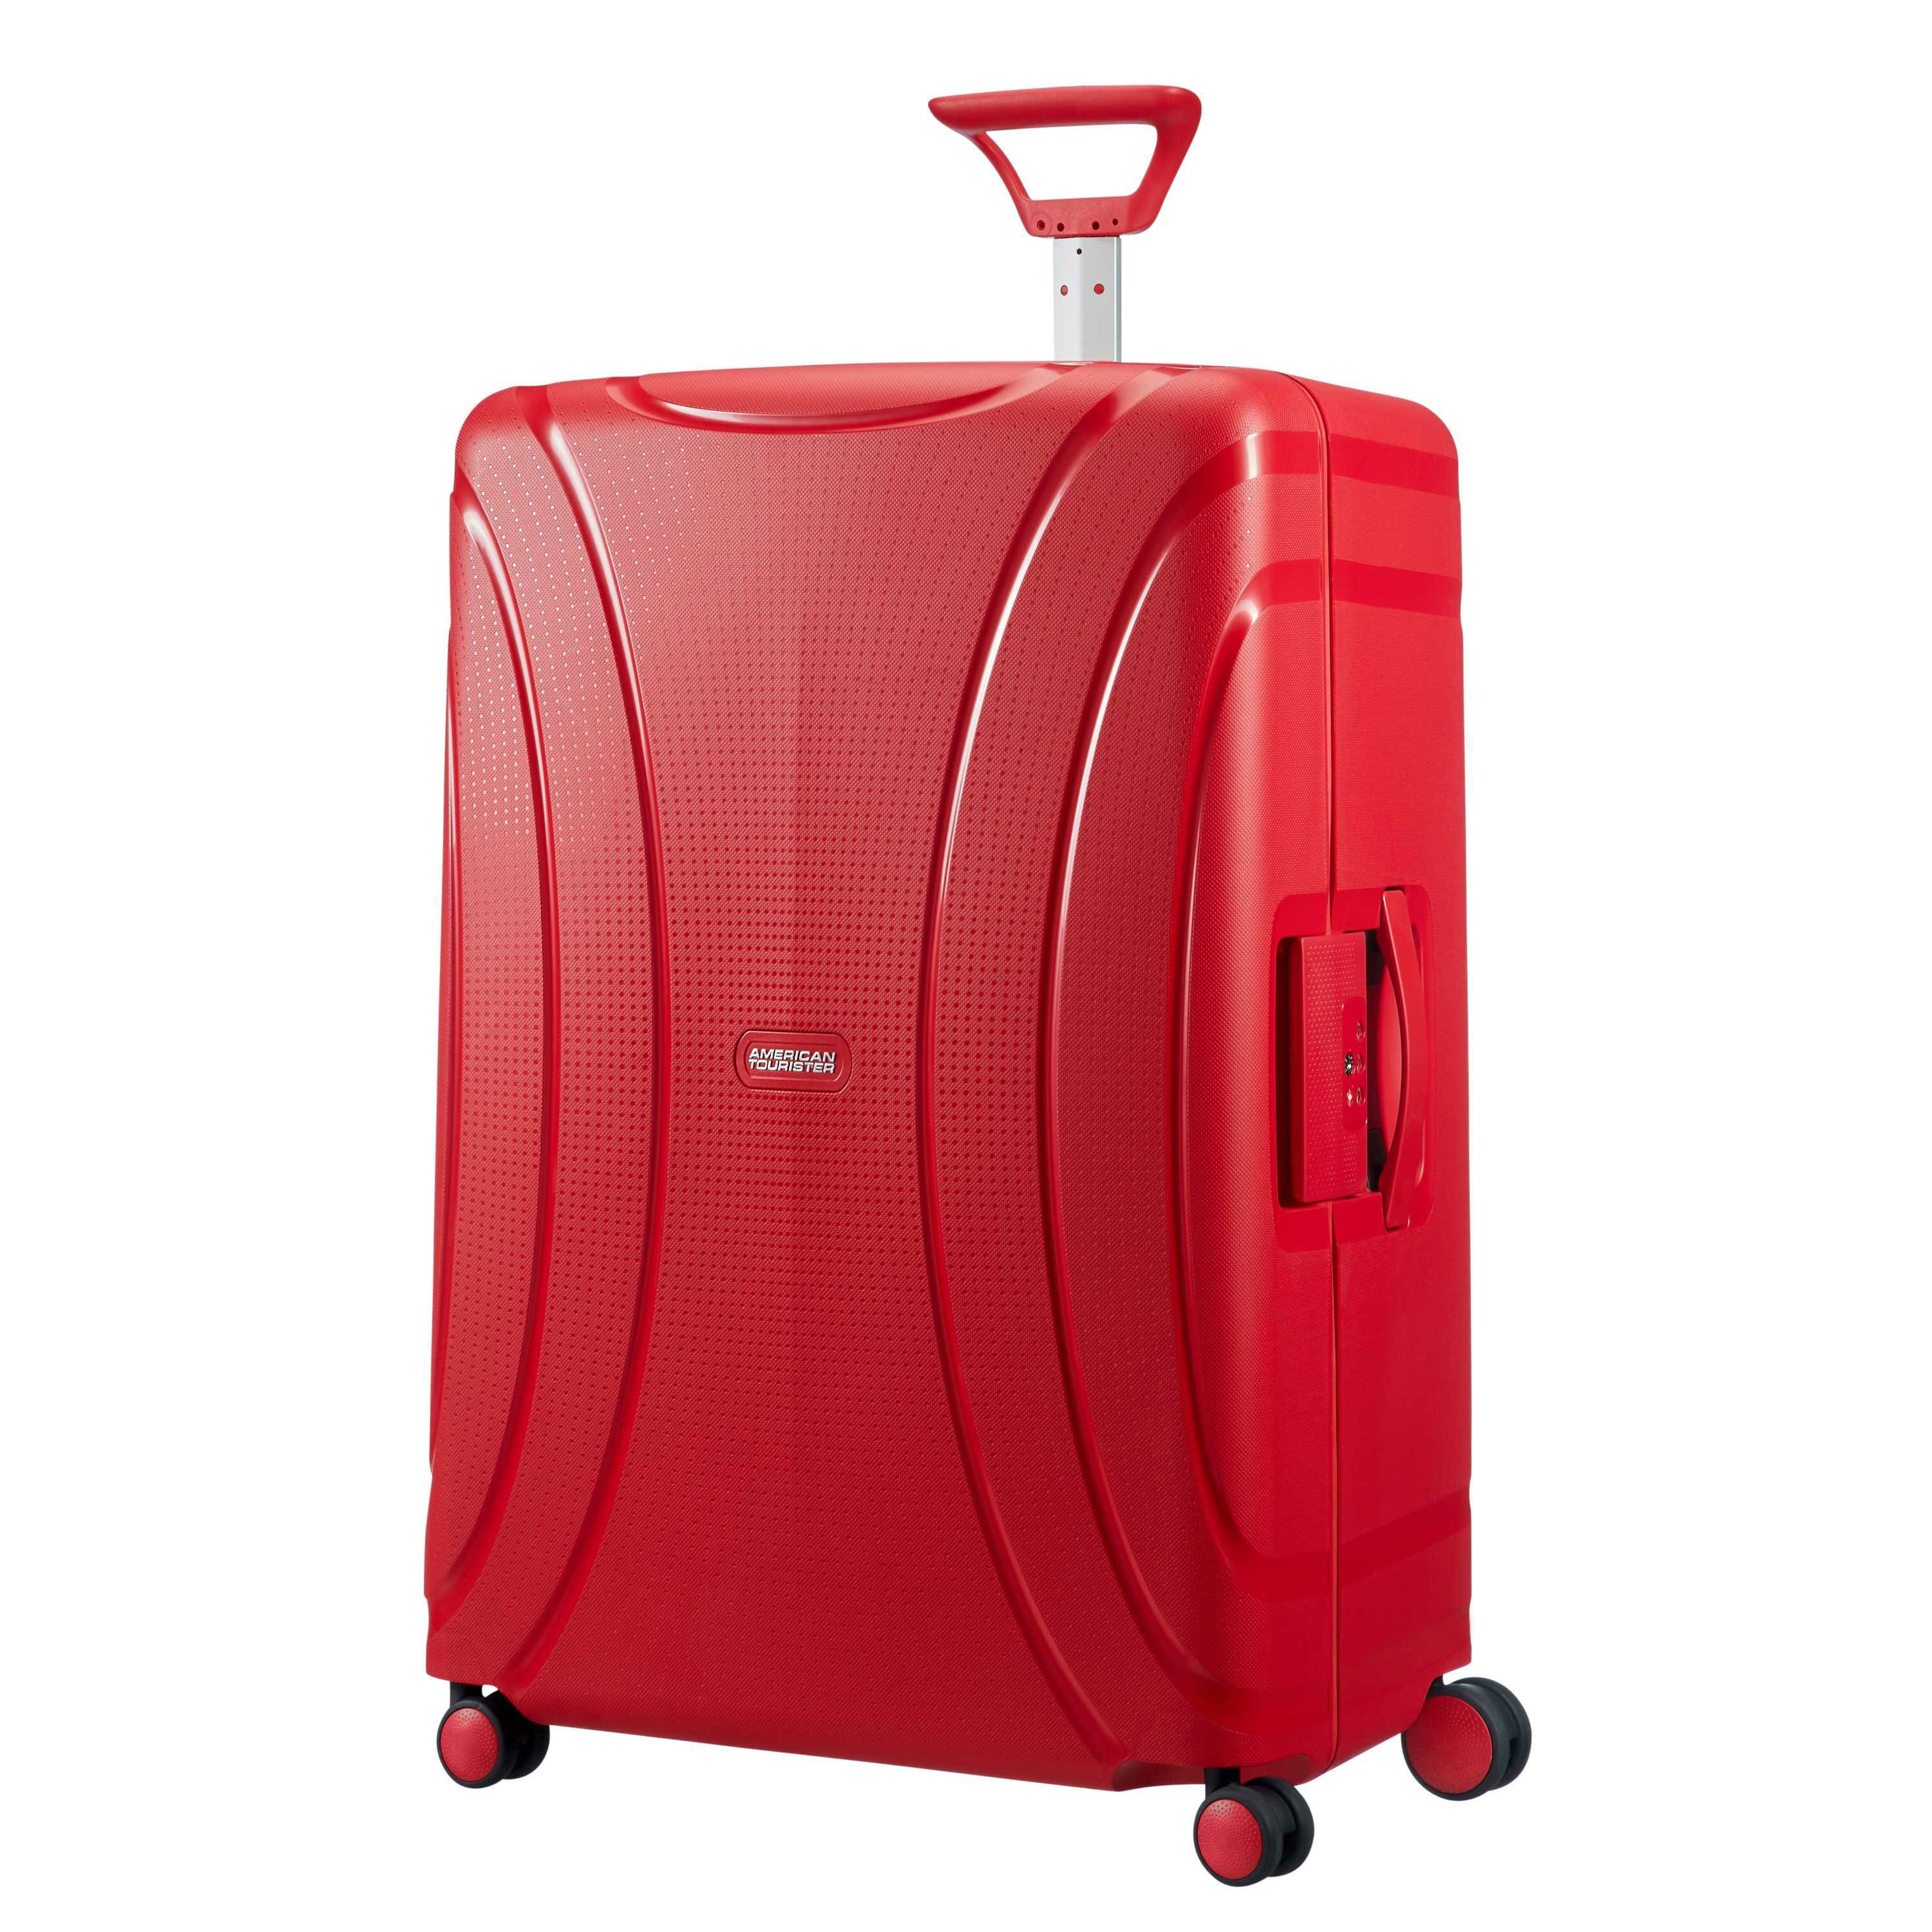 American Tourister Lock-N-Roll Spinner $60 Shipped